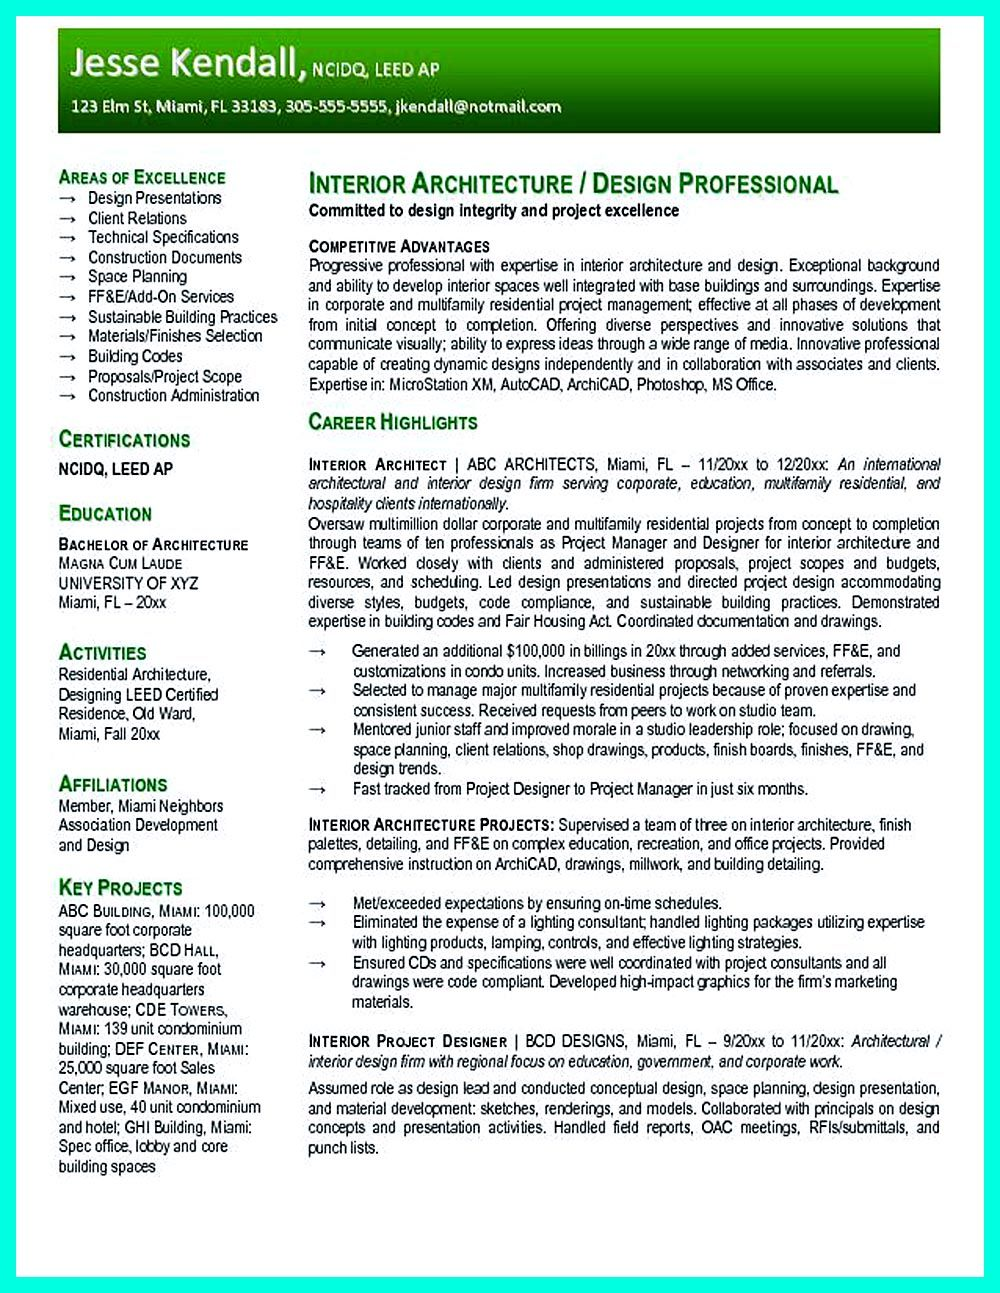 in the data architect resume  one must describe the professional profile of the applicant as